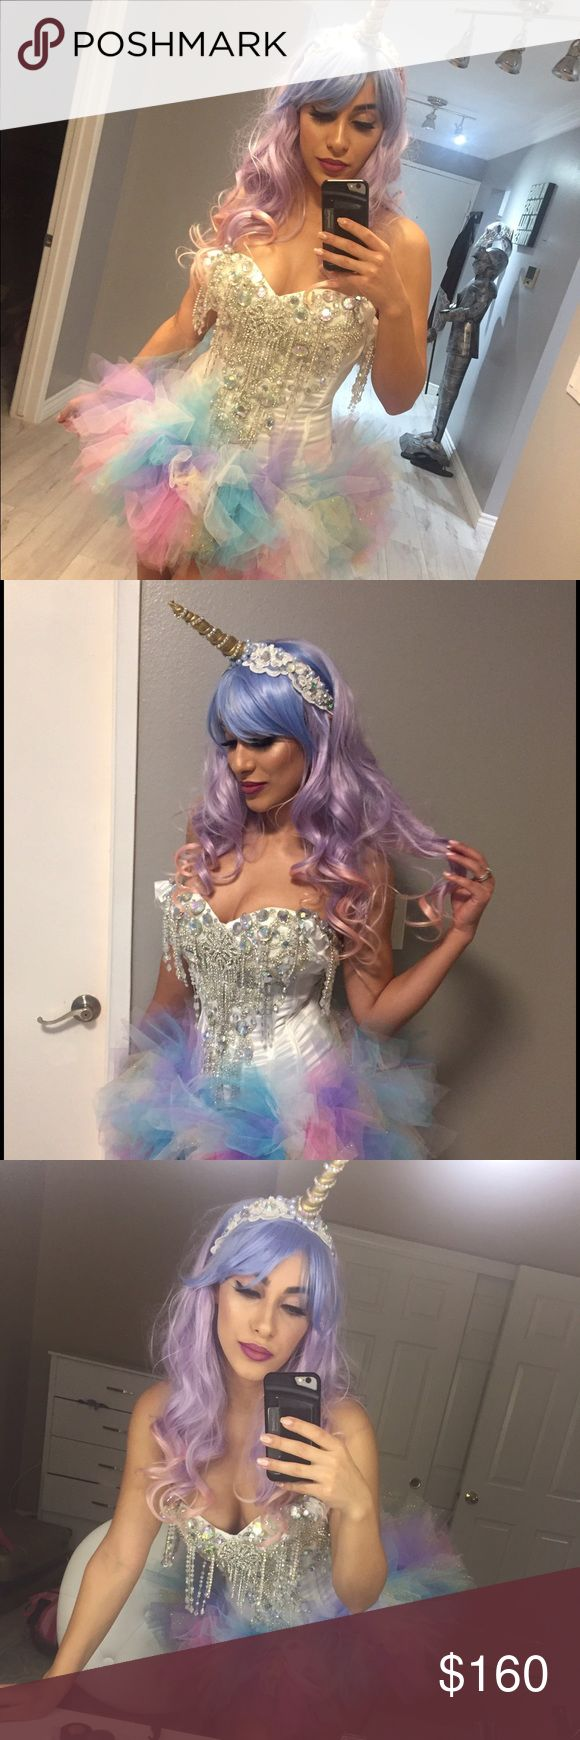 Beautiful unicorn costume Custom made costume. Comes with wig, unicorn head piece, corset and tutu. Corset is a size small and the tutu is adjustable Other